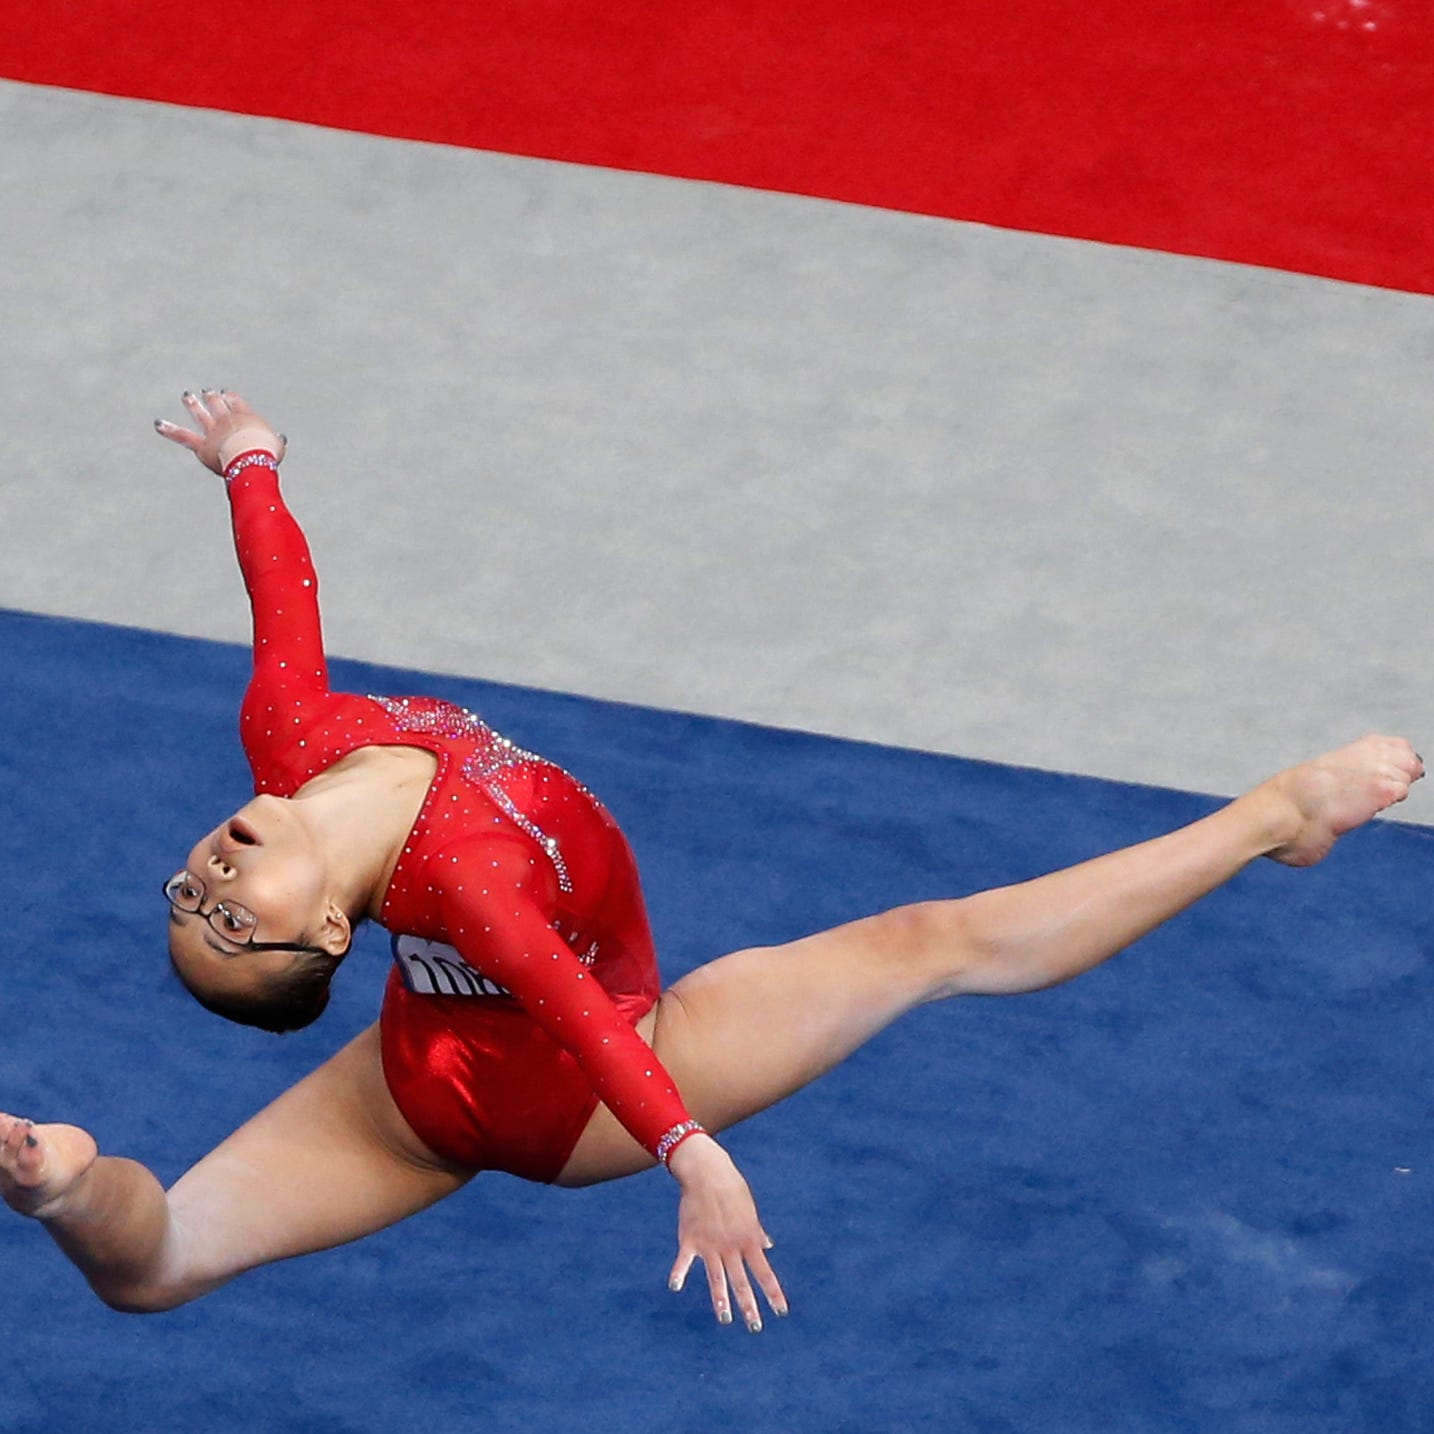 Simone Biles dominates in return to US gymnastics championships; Delaware's Morgan Hurd in second place